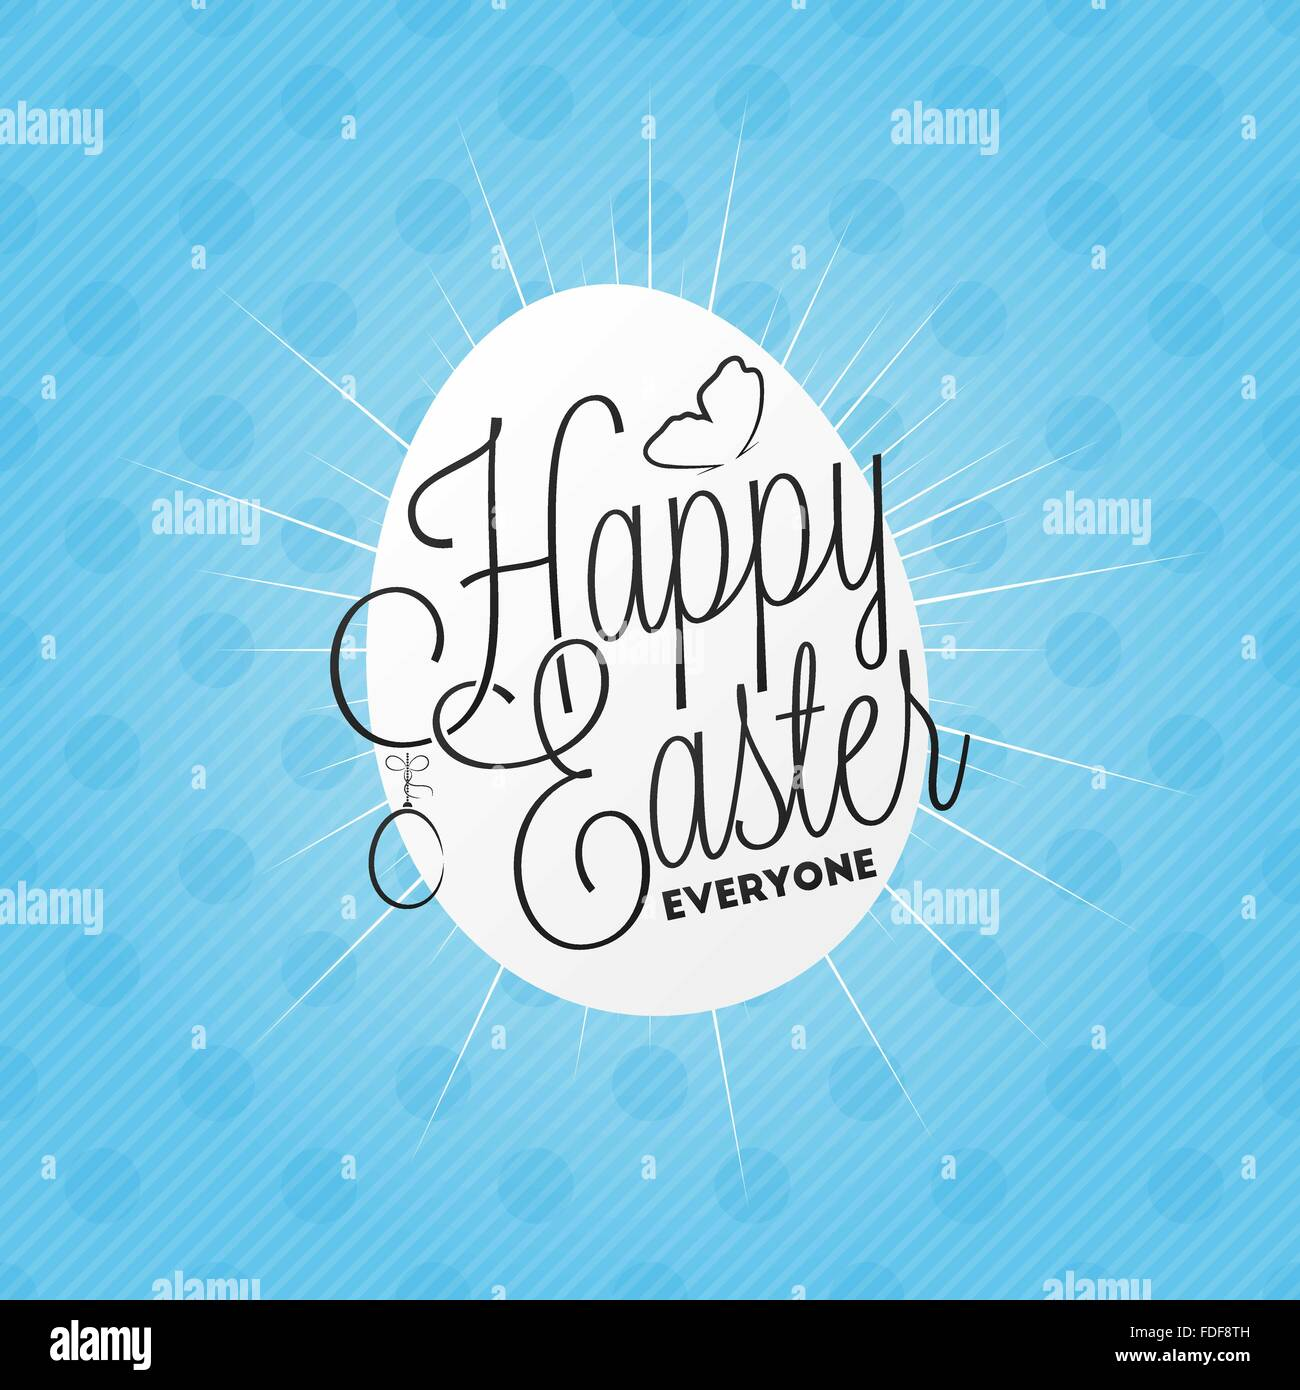 Happy easter everyone lettering for your design - Stock Image